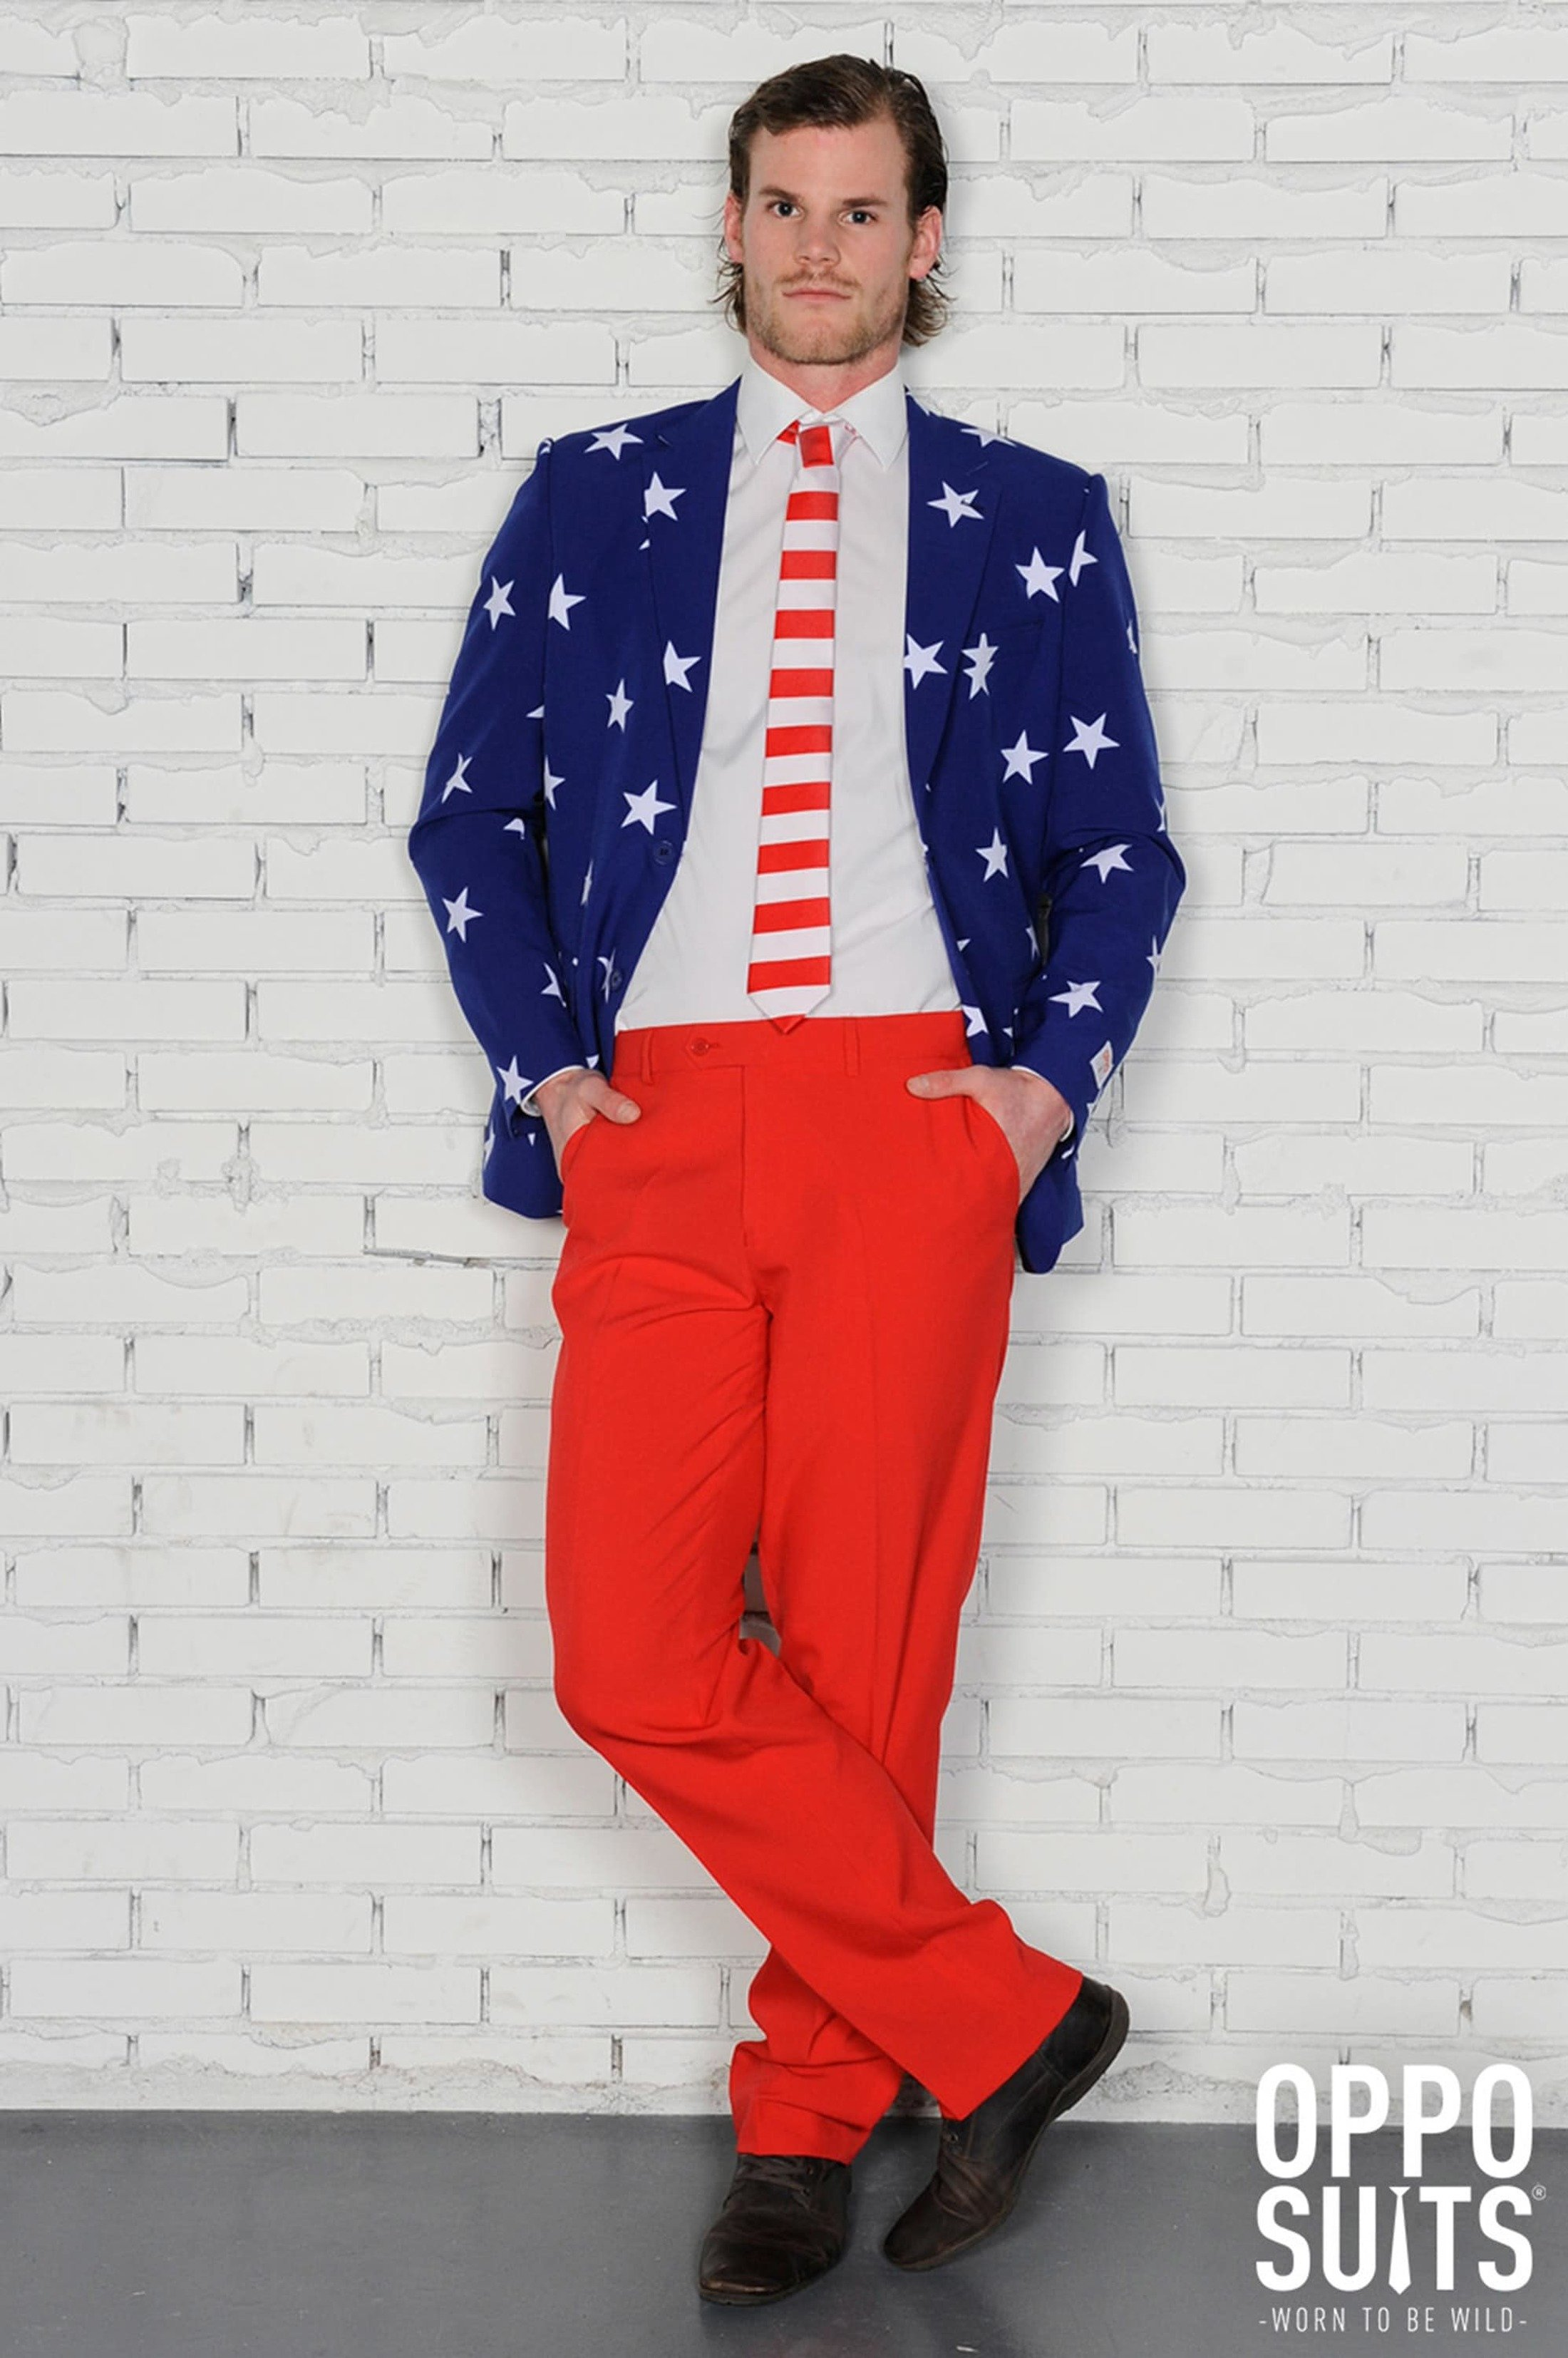 OppoSuits Stars and Stripes Suit